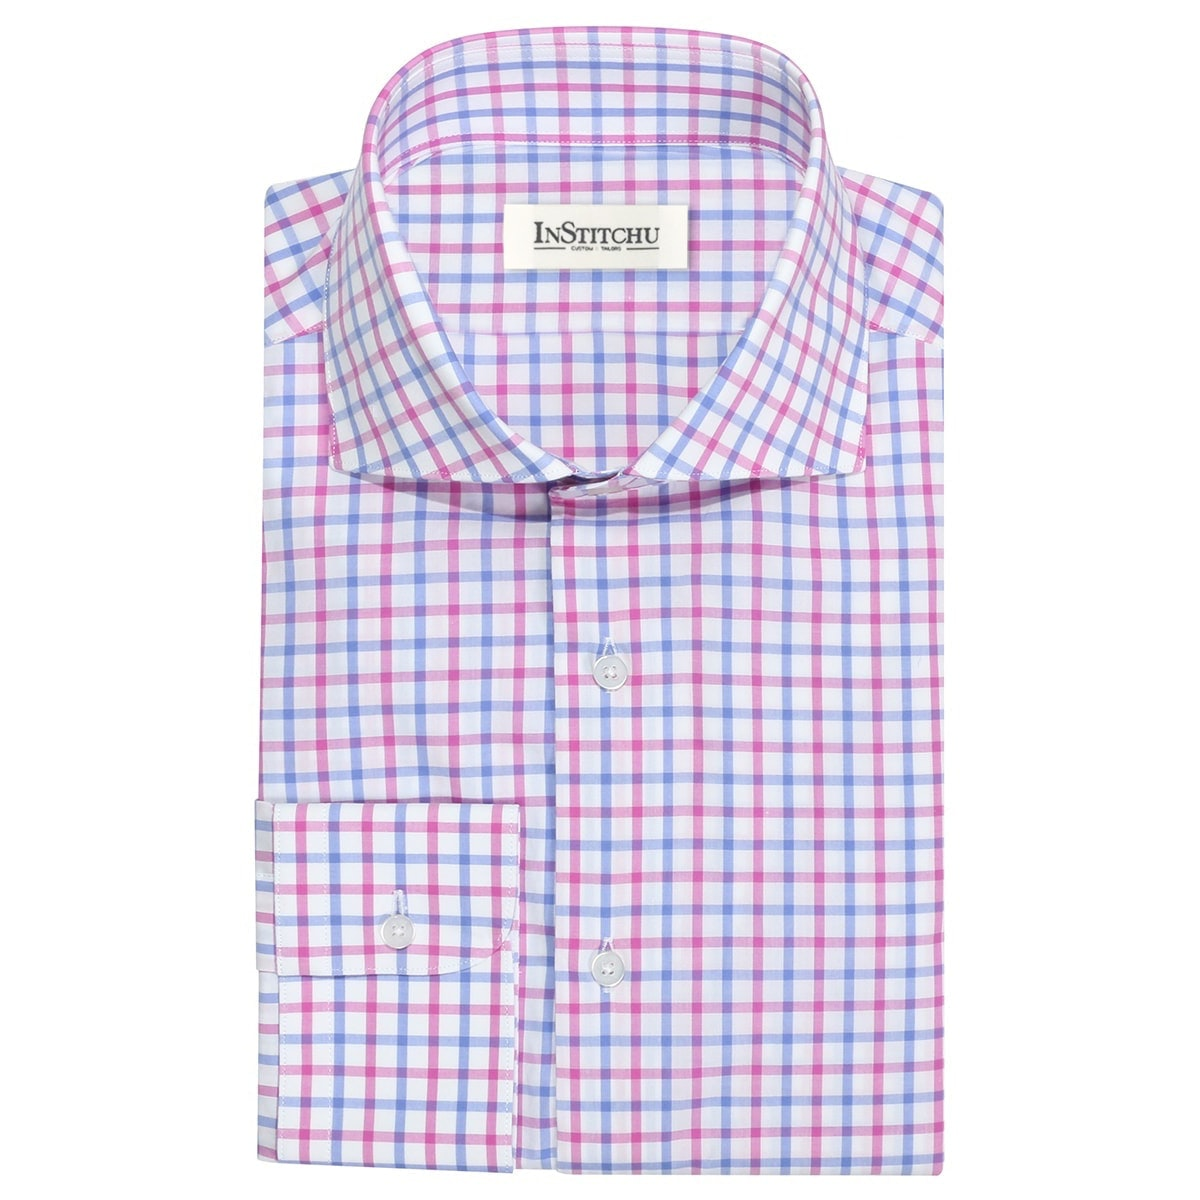 InStitchu Collection The Corindi Blue and Pink Check Shirt